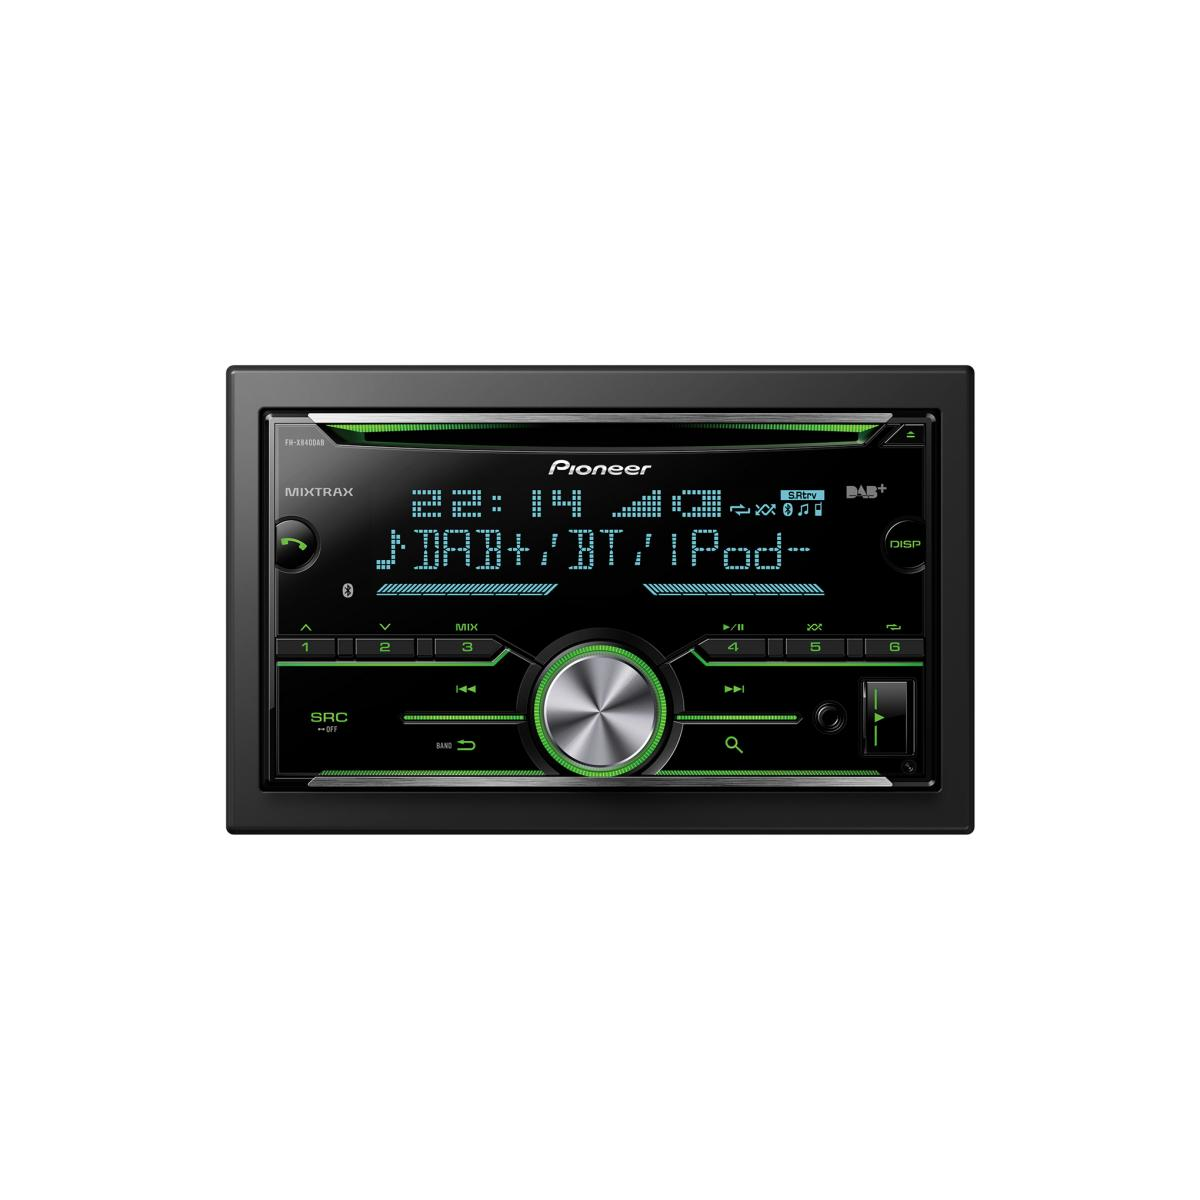 Made for iPod/iPhone Pioneer FHX840DAB 1